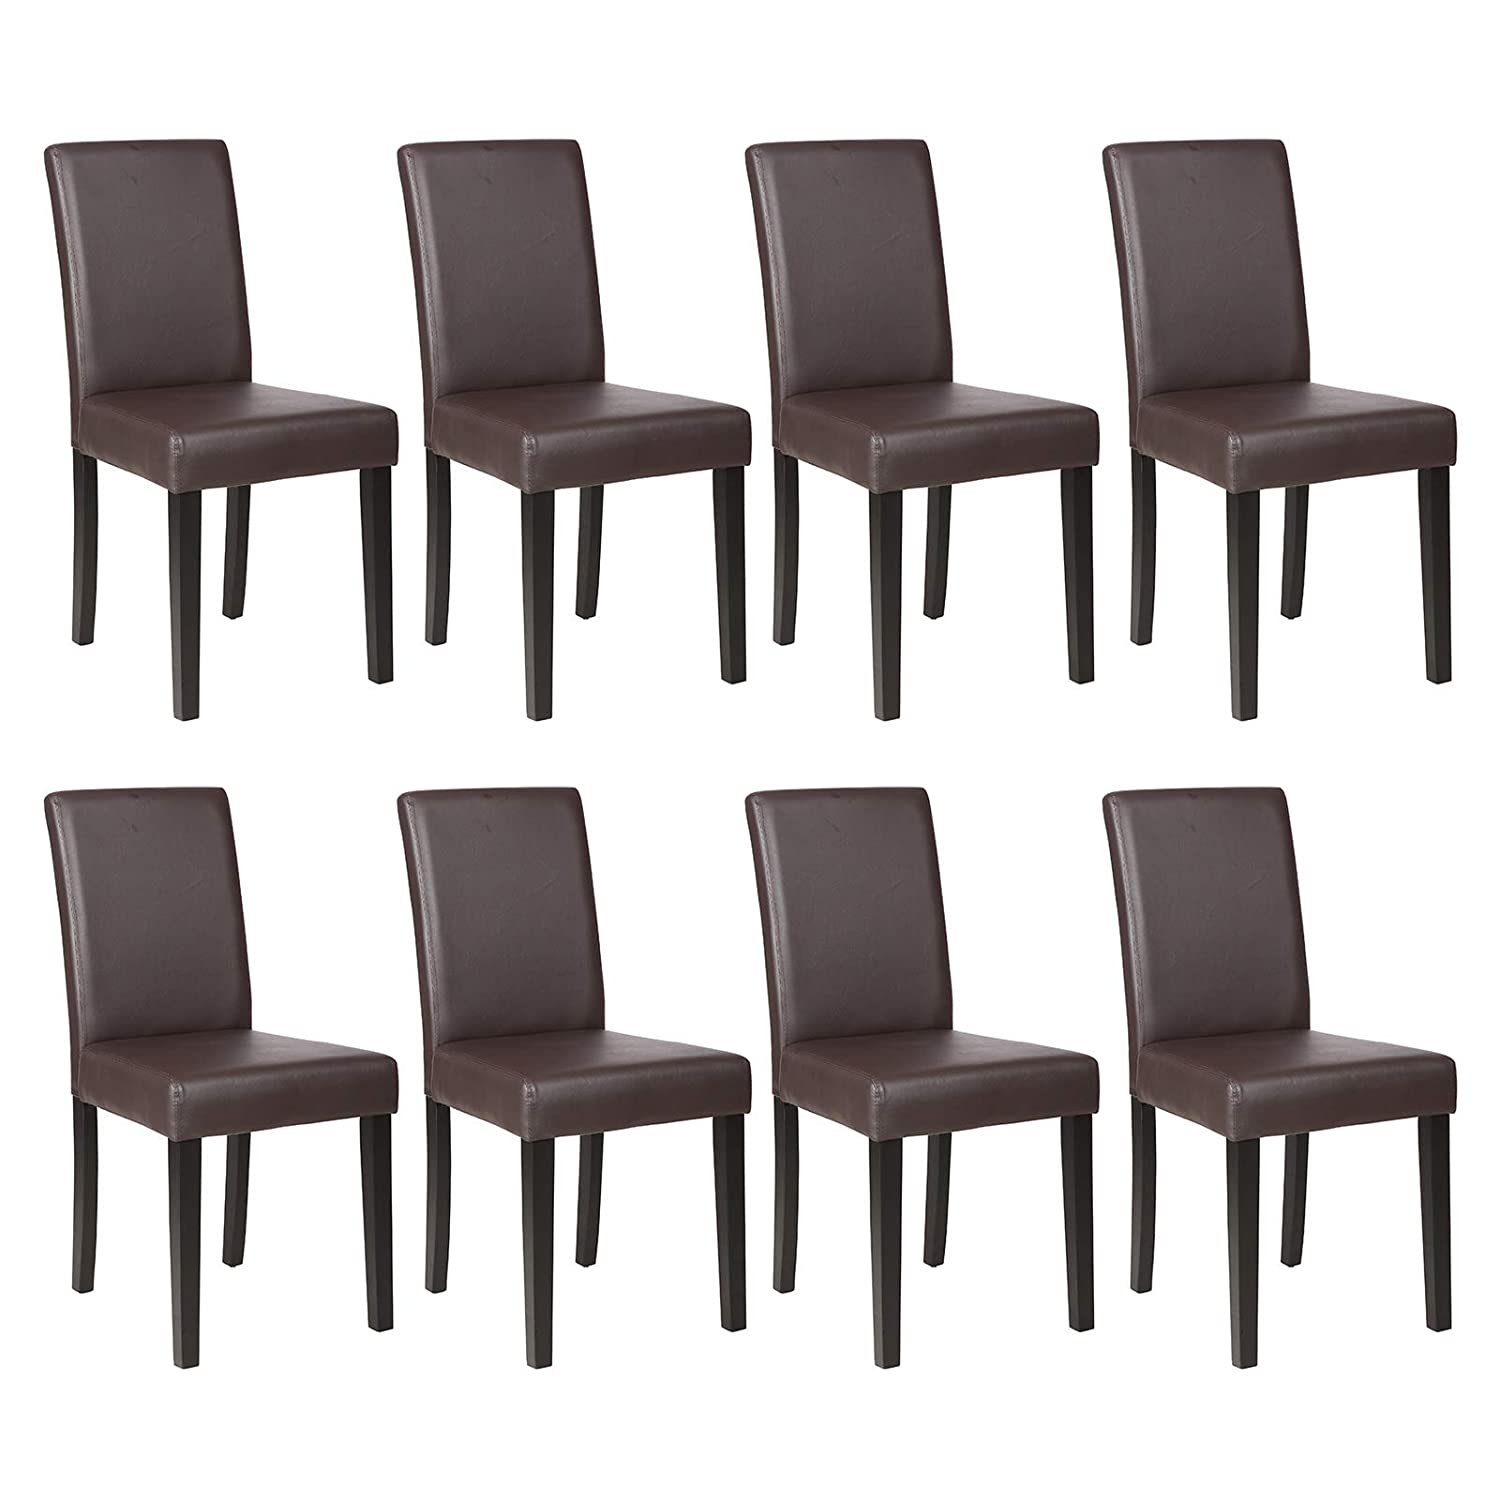 Mecor Dining Chairs Set of 8, Kitchen Leather Padded Chair with Solid Wood Legs Dining Room Furniture 8xBrown